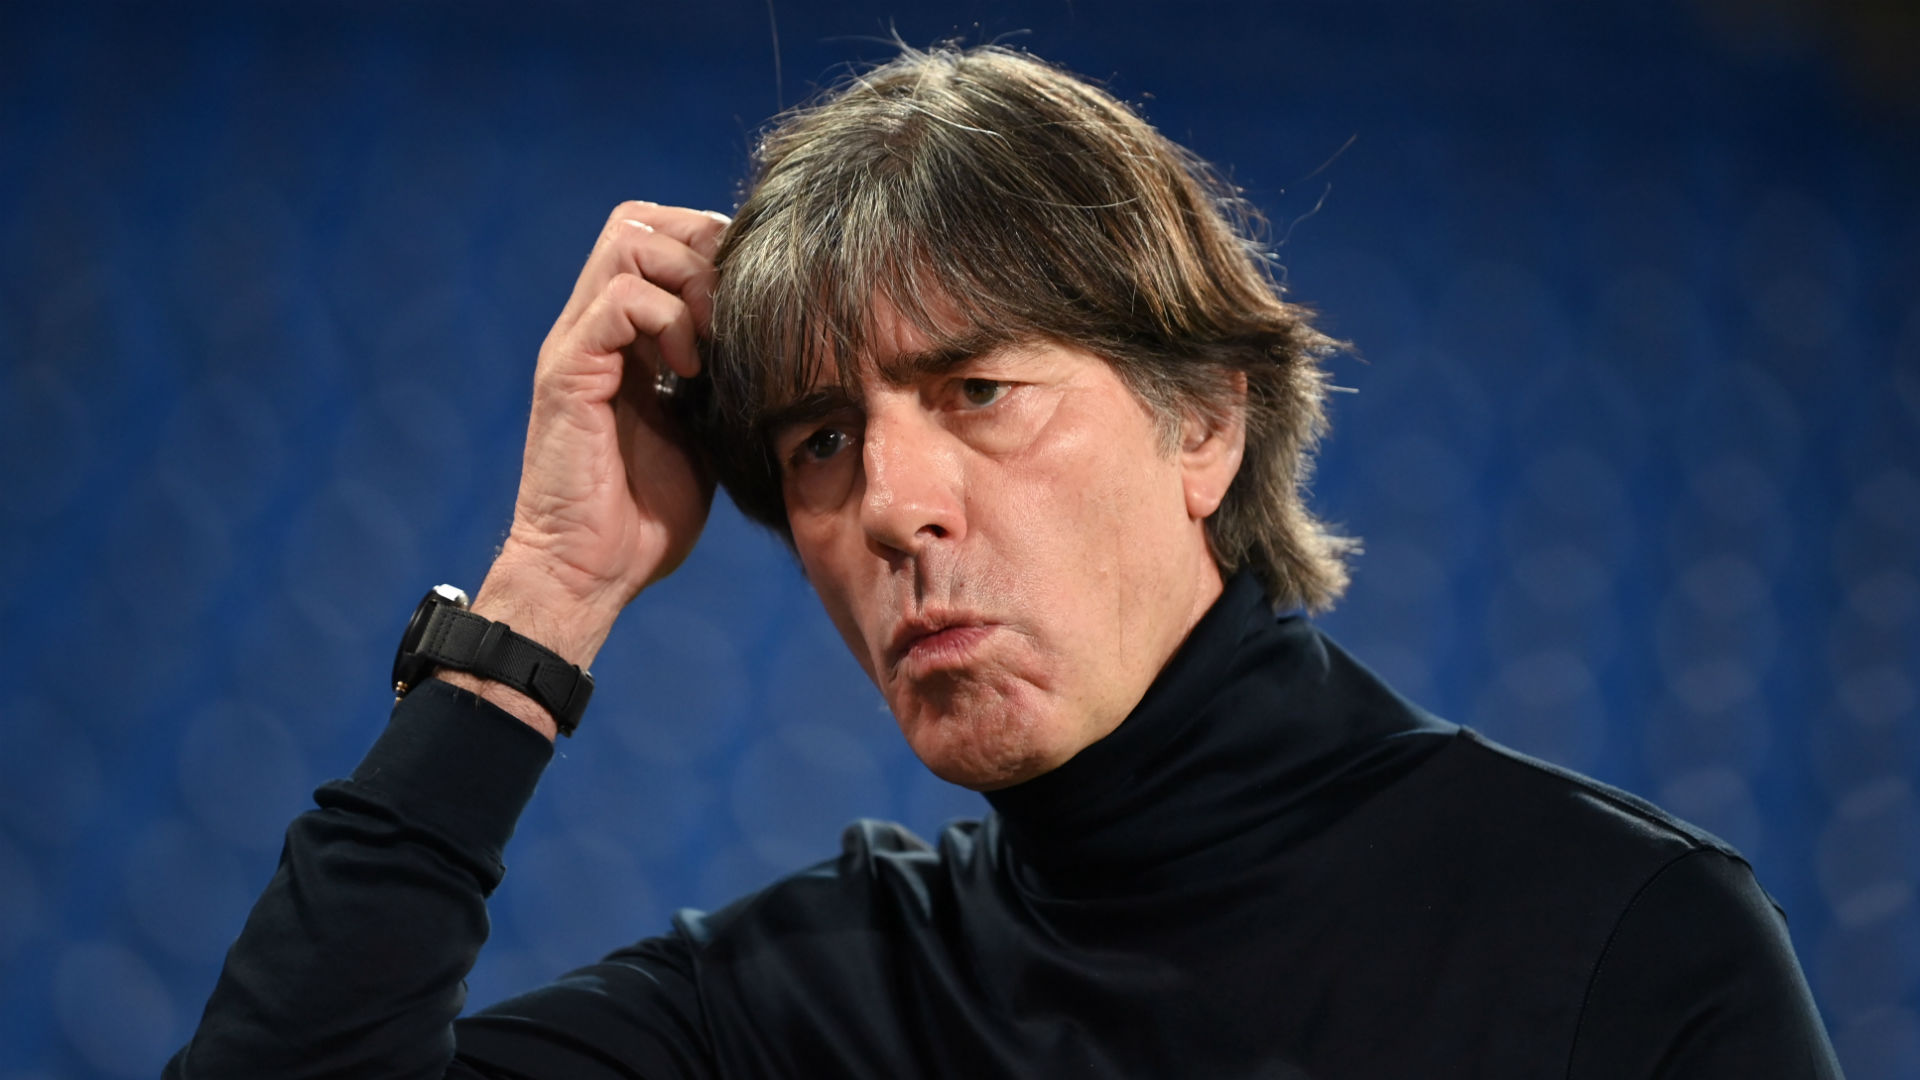 Low given space to deal with Spain thrashing but Germany 'situation' being assessed